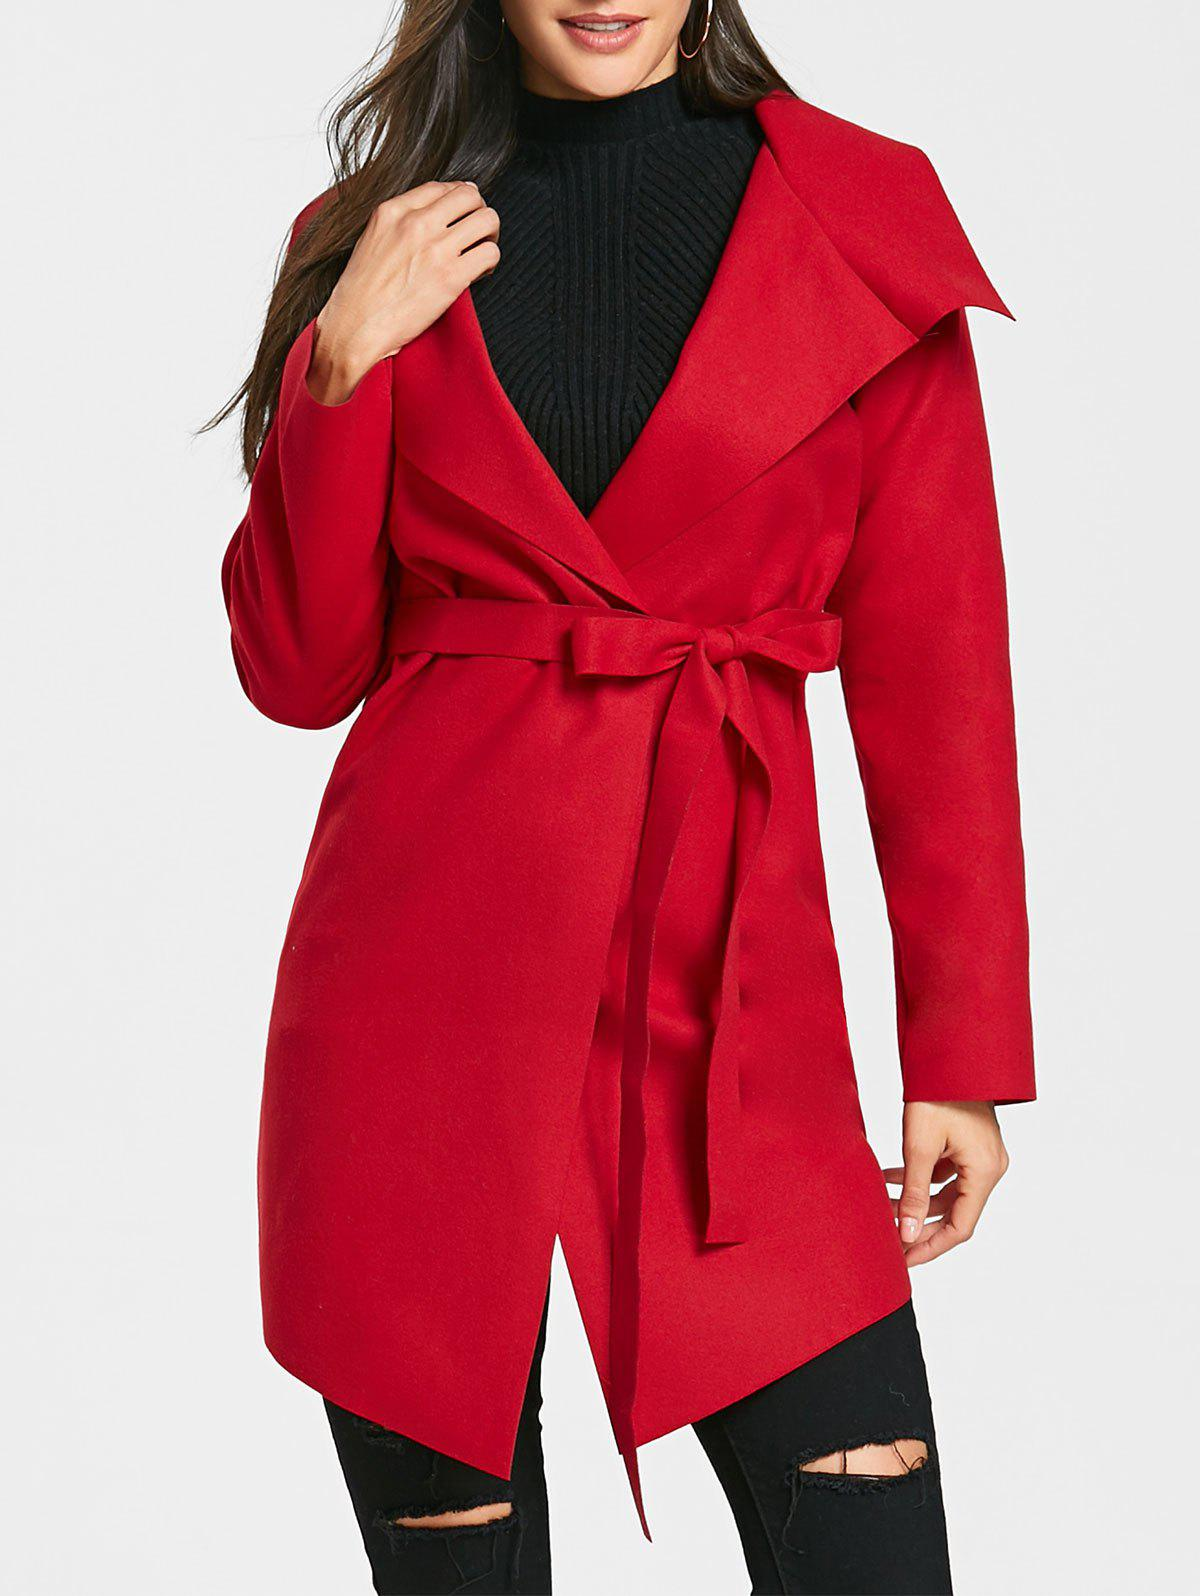 Belted Asymmetrical Wrap Coat аксессуар panasonic сетка для бритв wes9089y1361